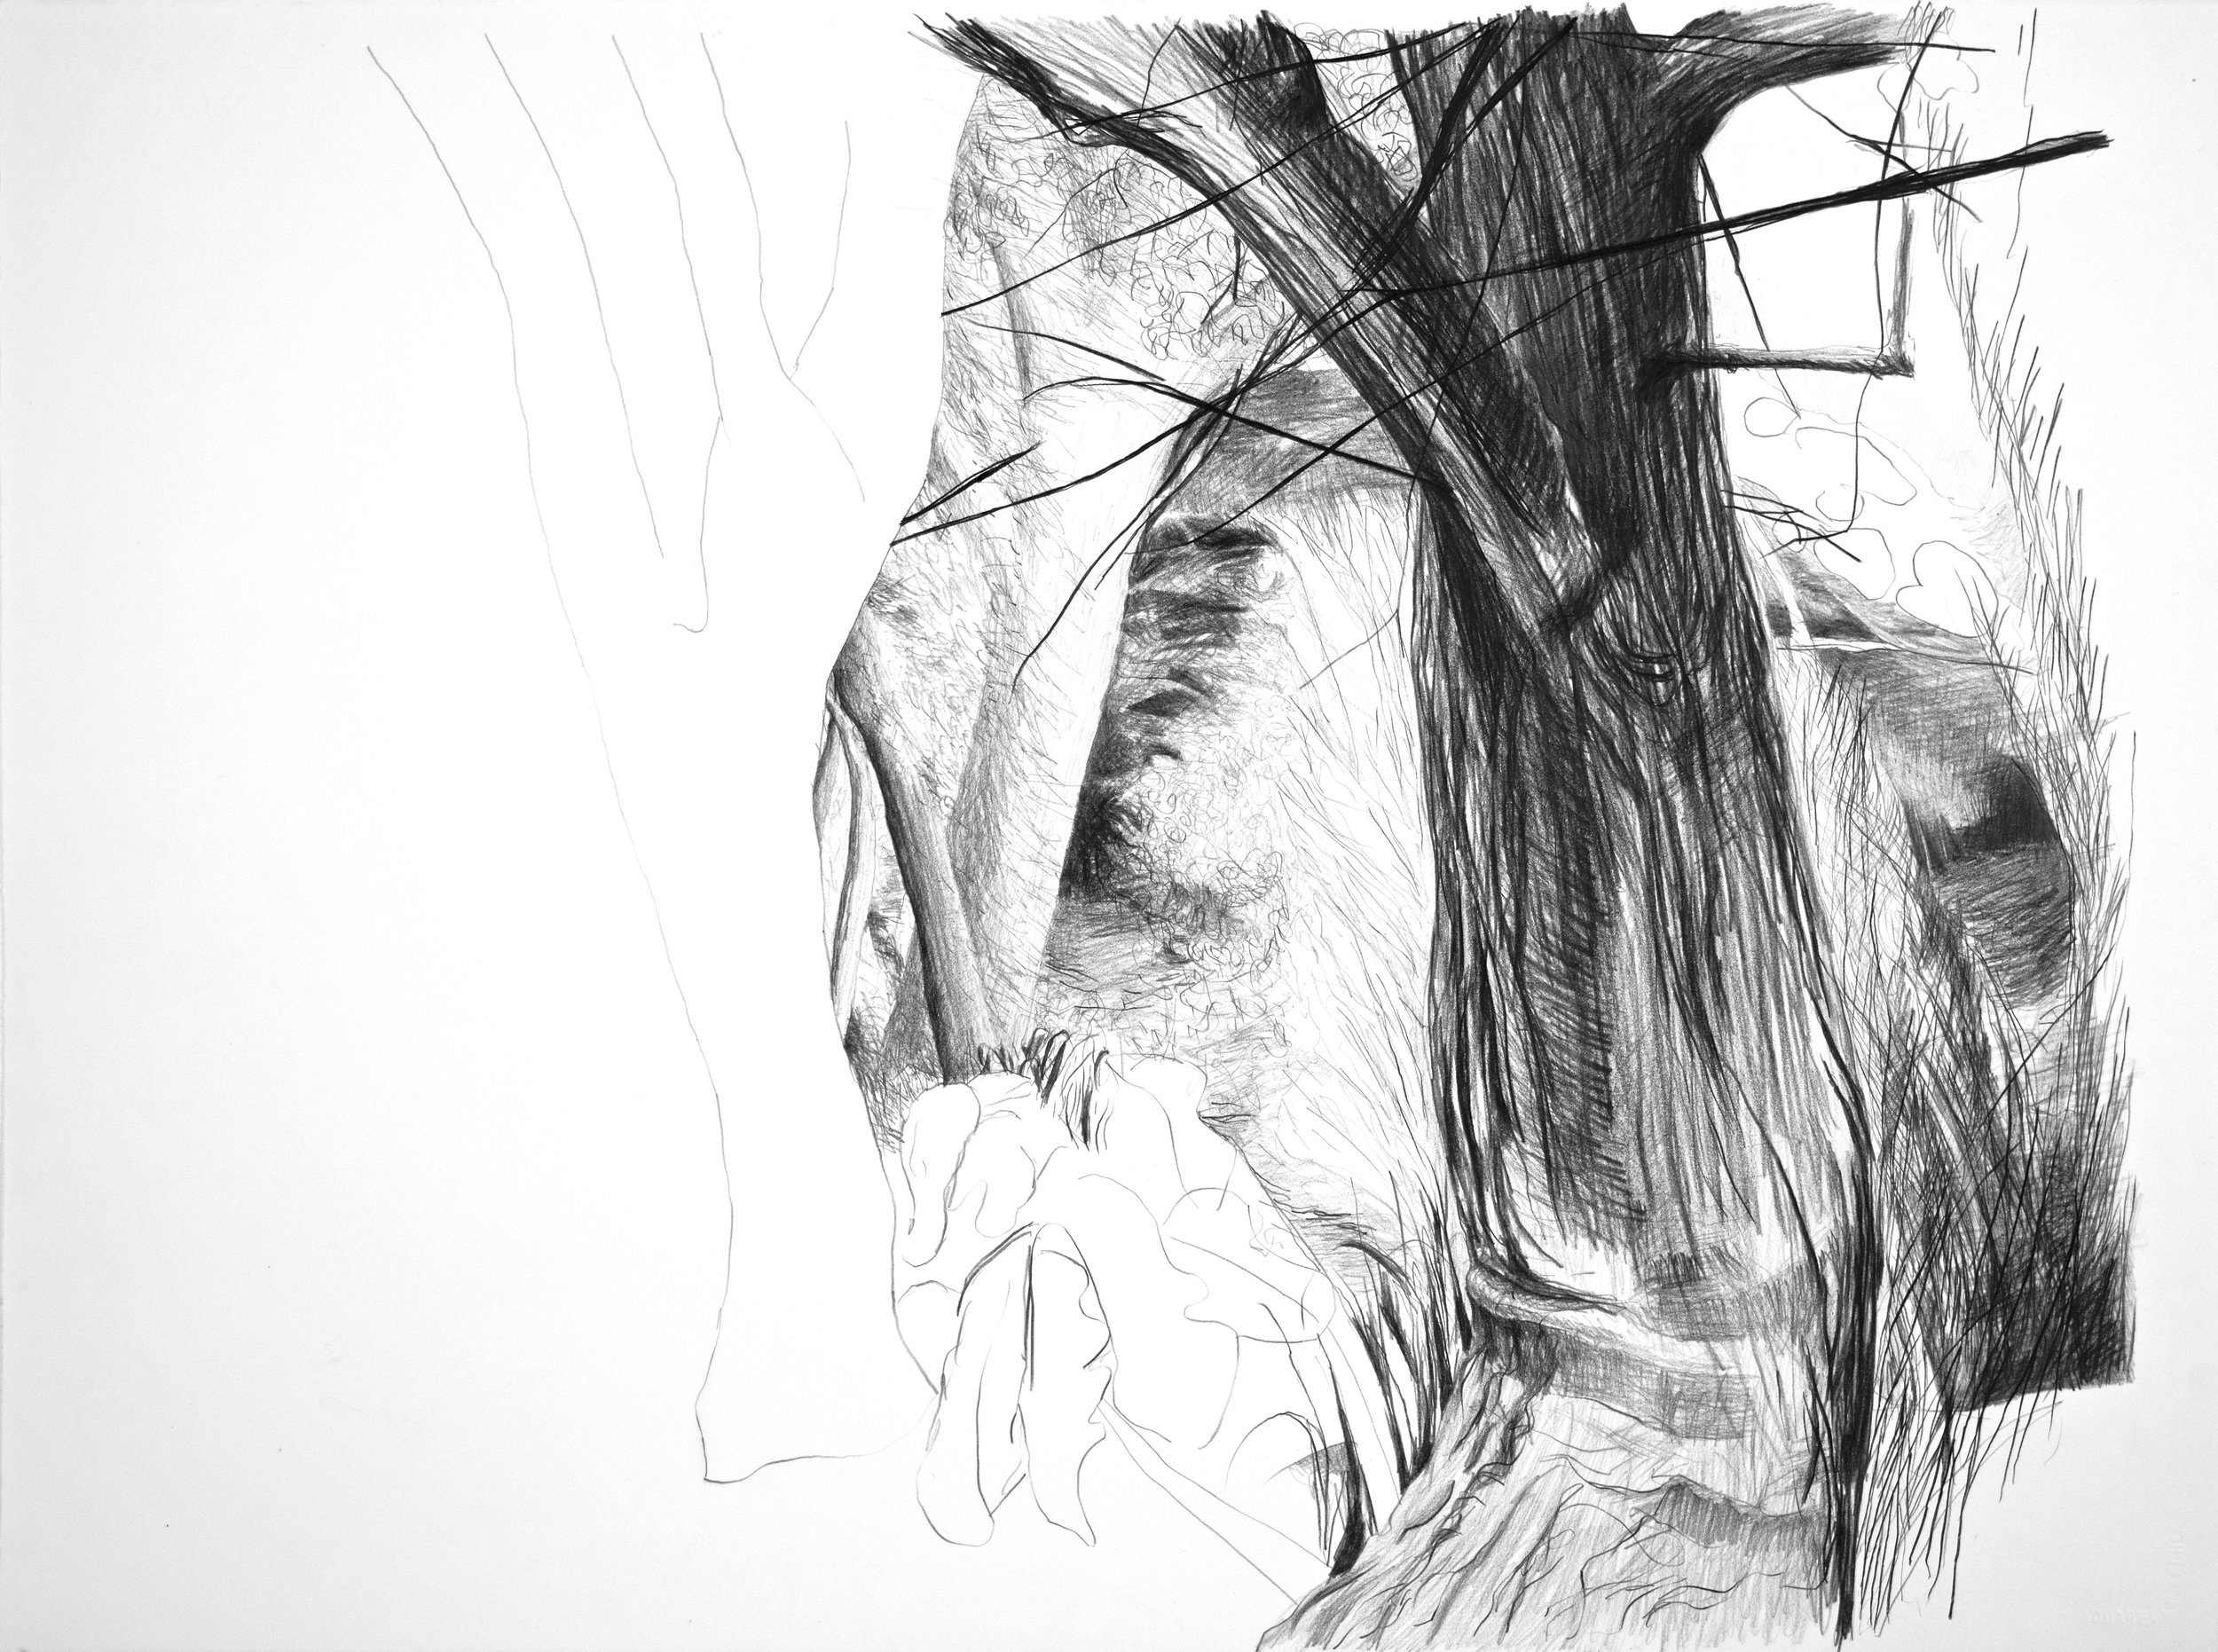 """Trunk and Branches,  2013, Graphite/Paper, 22"""" x 30"""""""